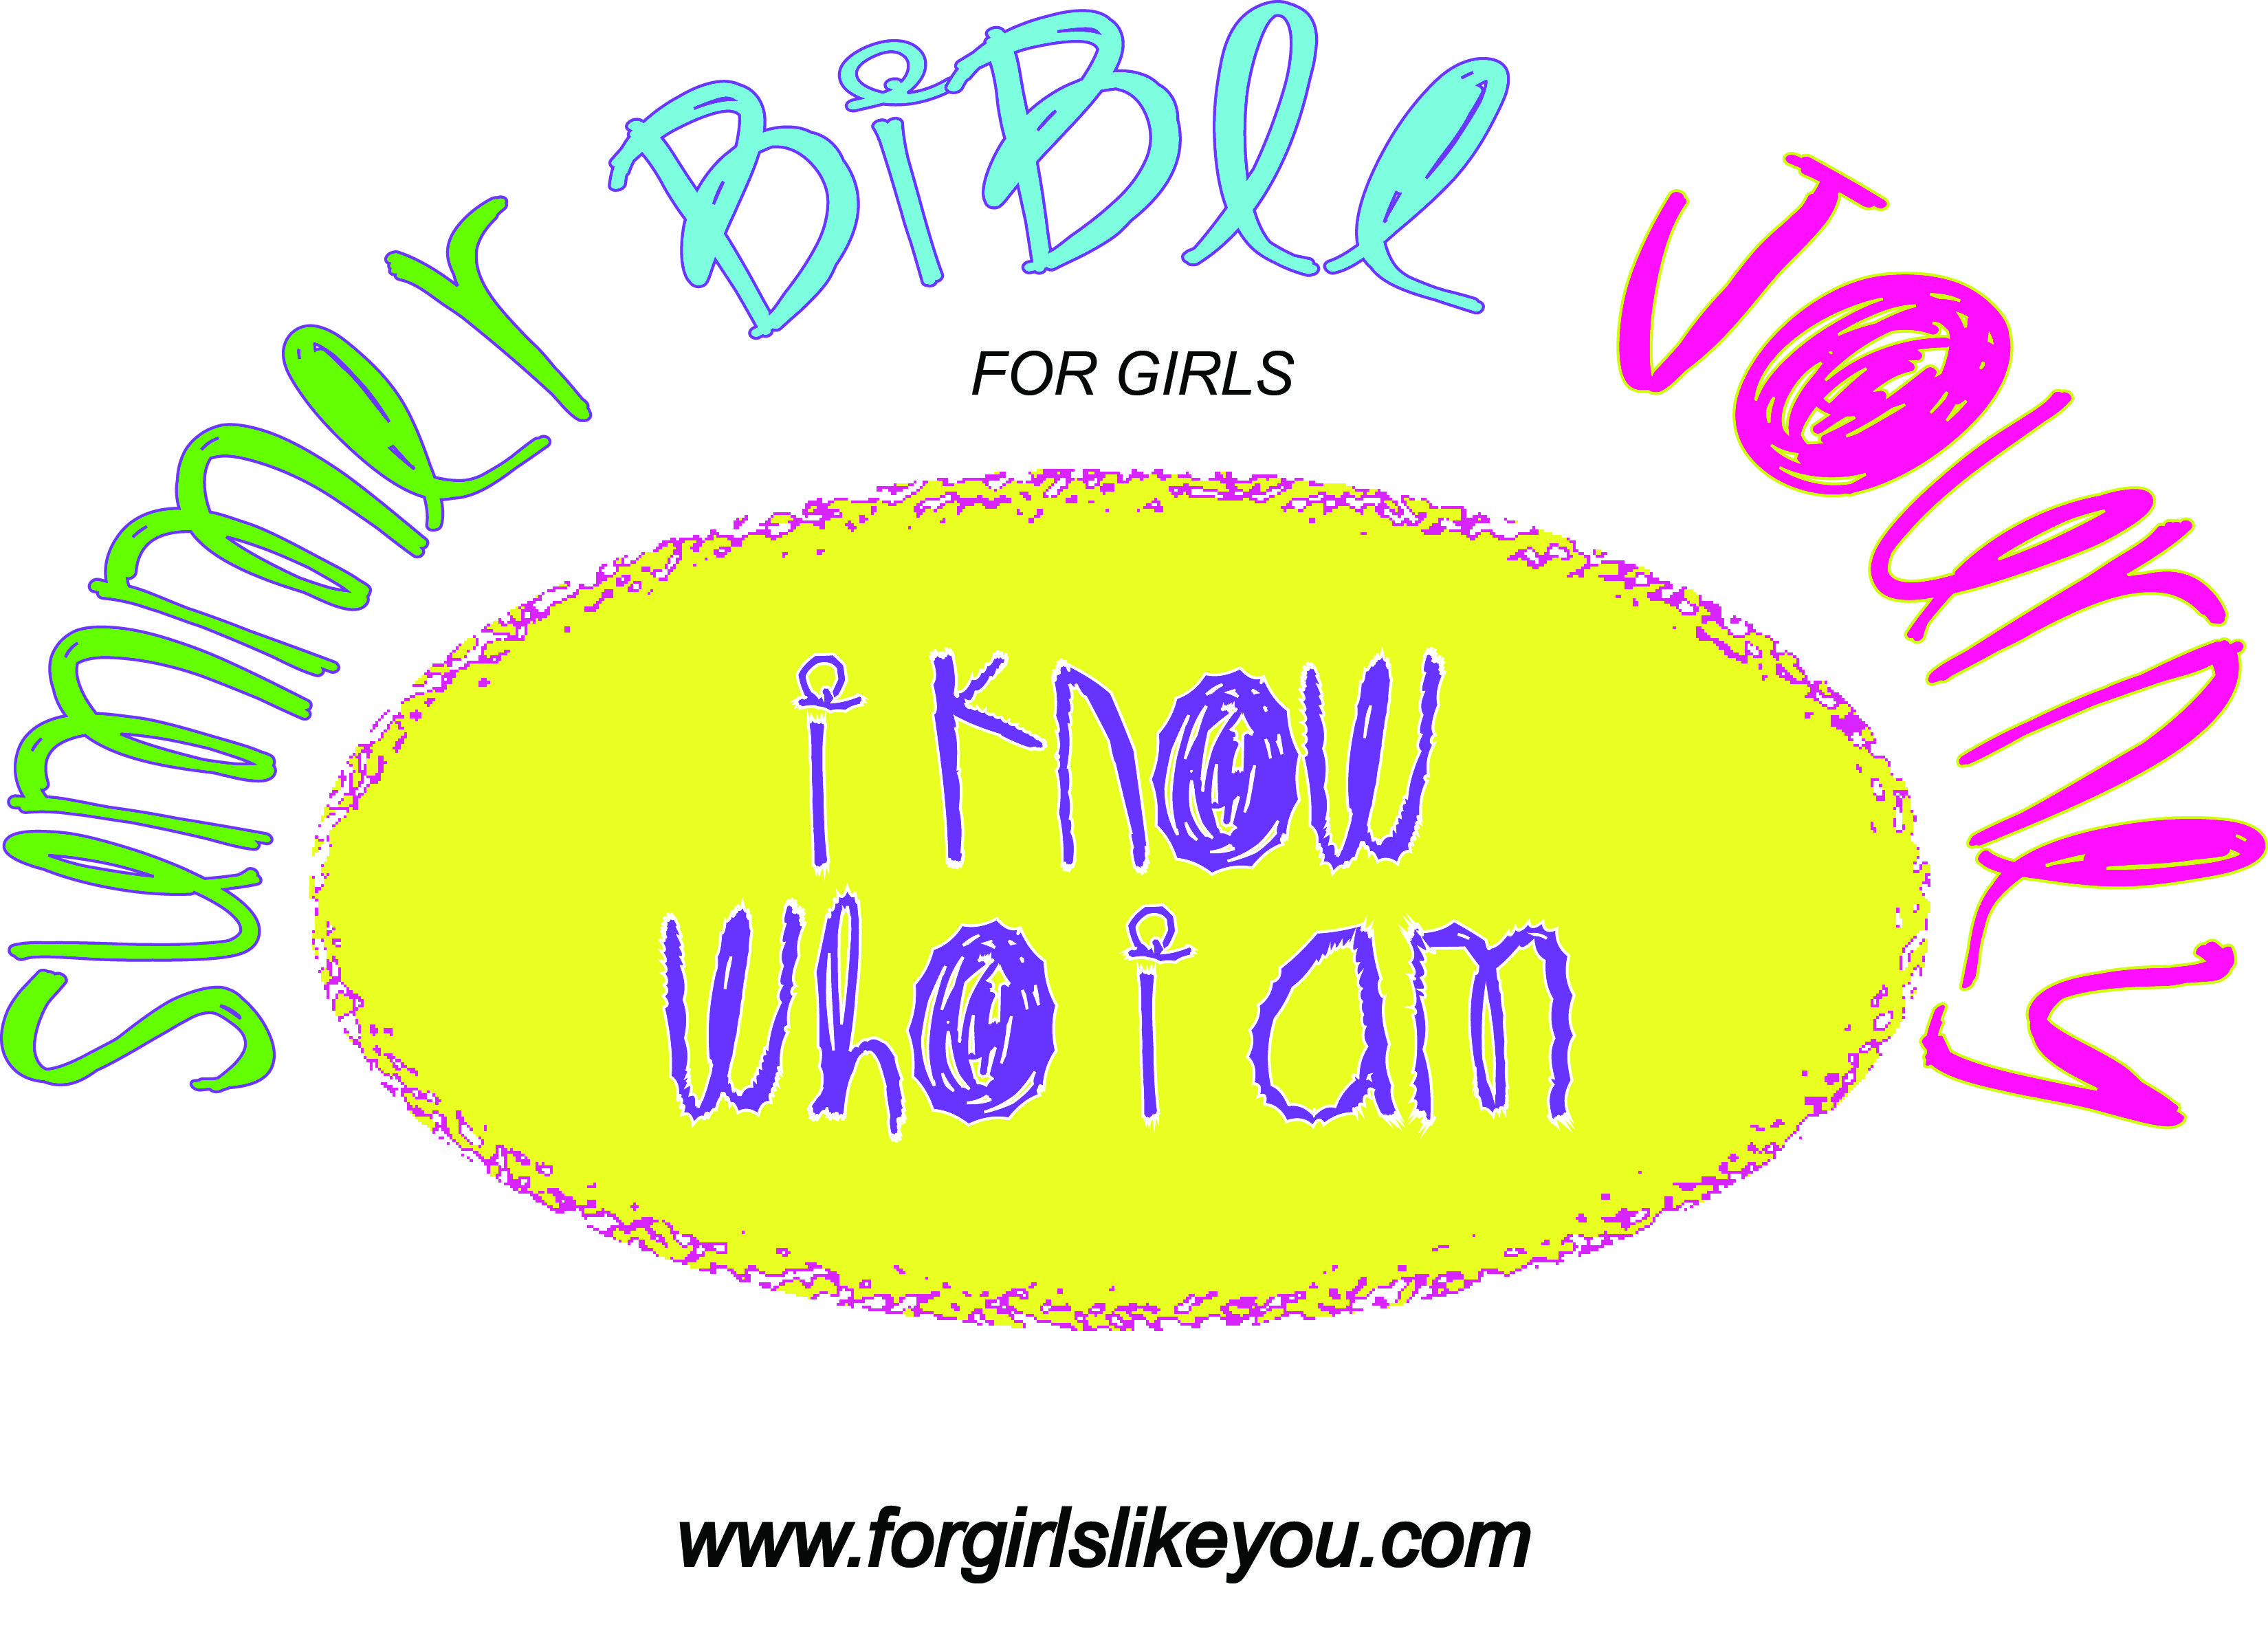 A 6 week bible study for girls! ages 6-11! www.forgirlslikeyou.com